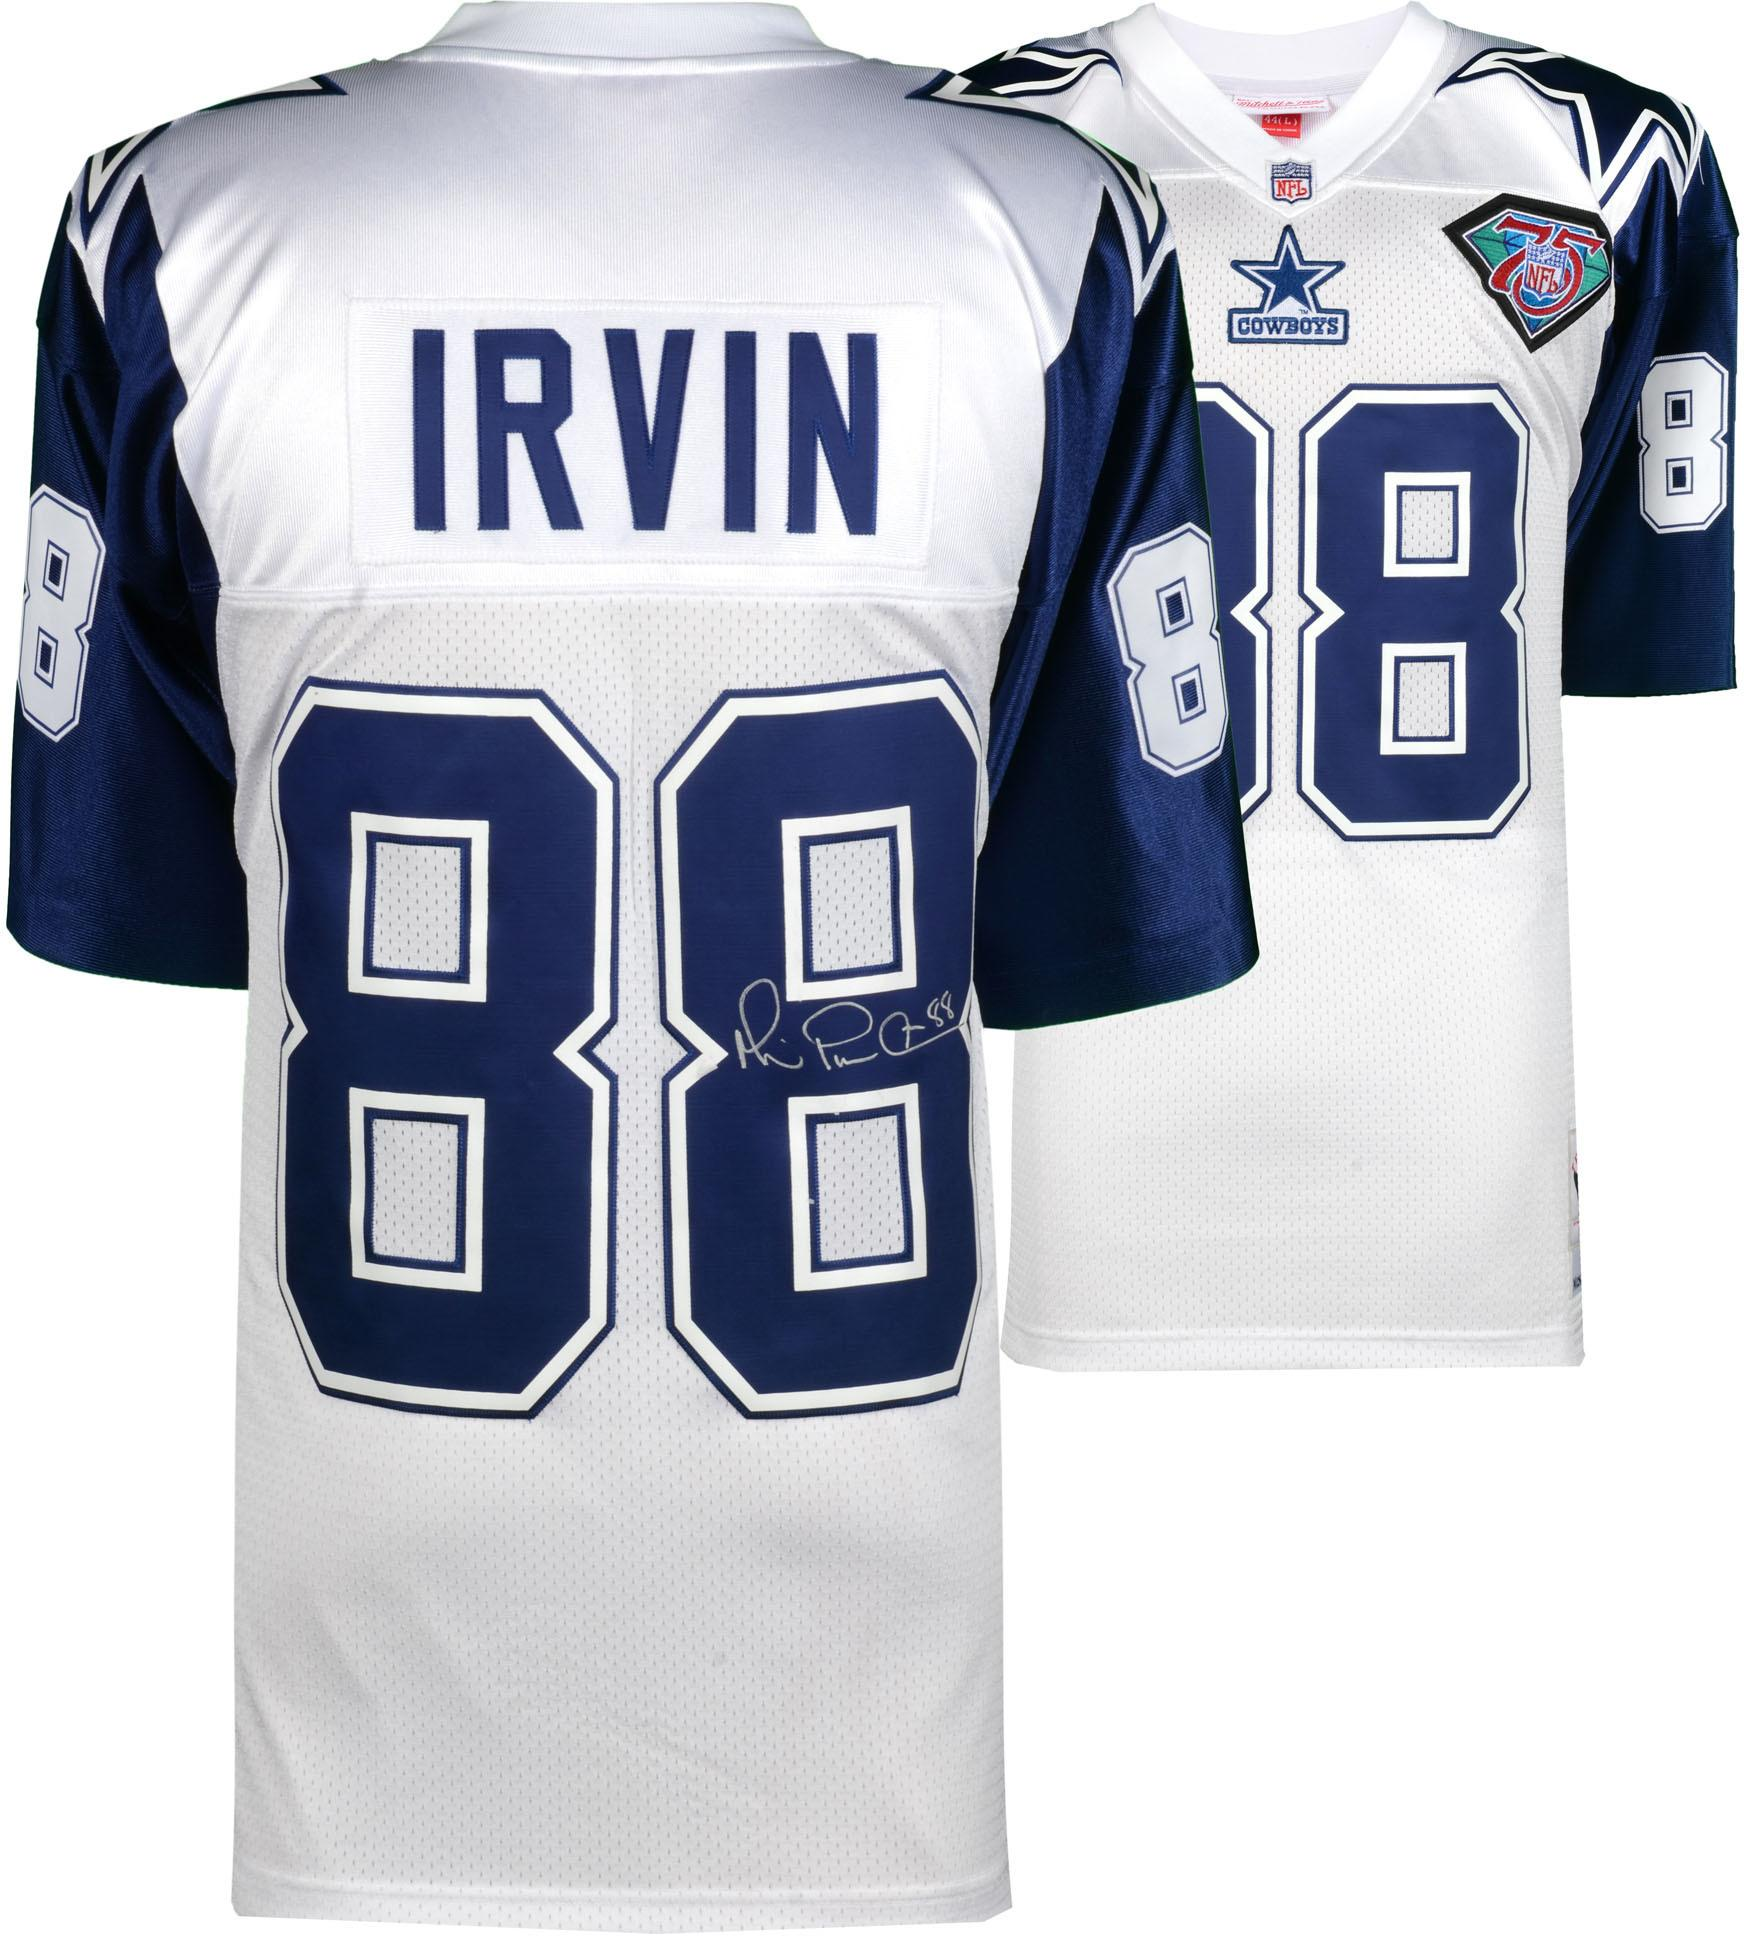 Michael Irvin Dallas Cowboys Autographed White Mitchell & Ness Authentic Jersey - Fanatics Authentic Certified